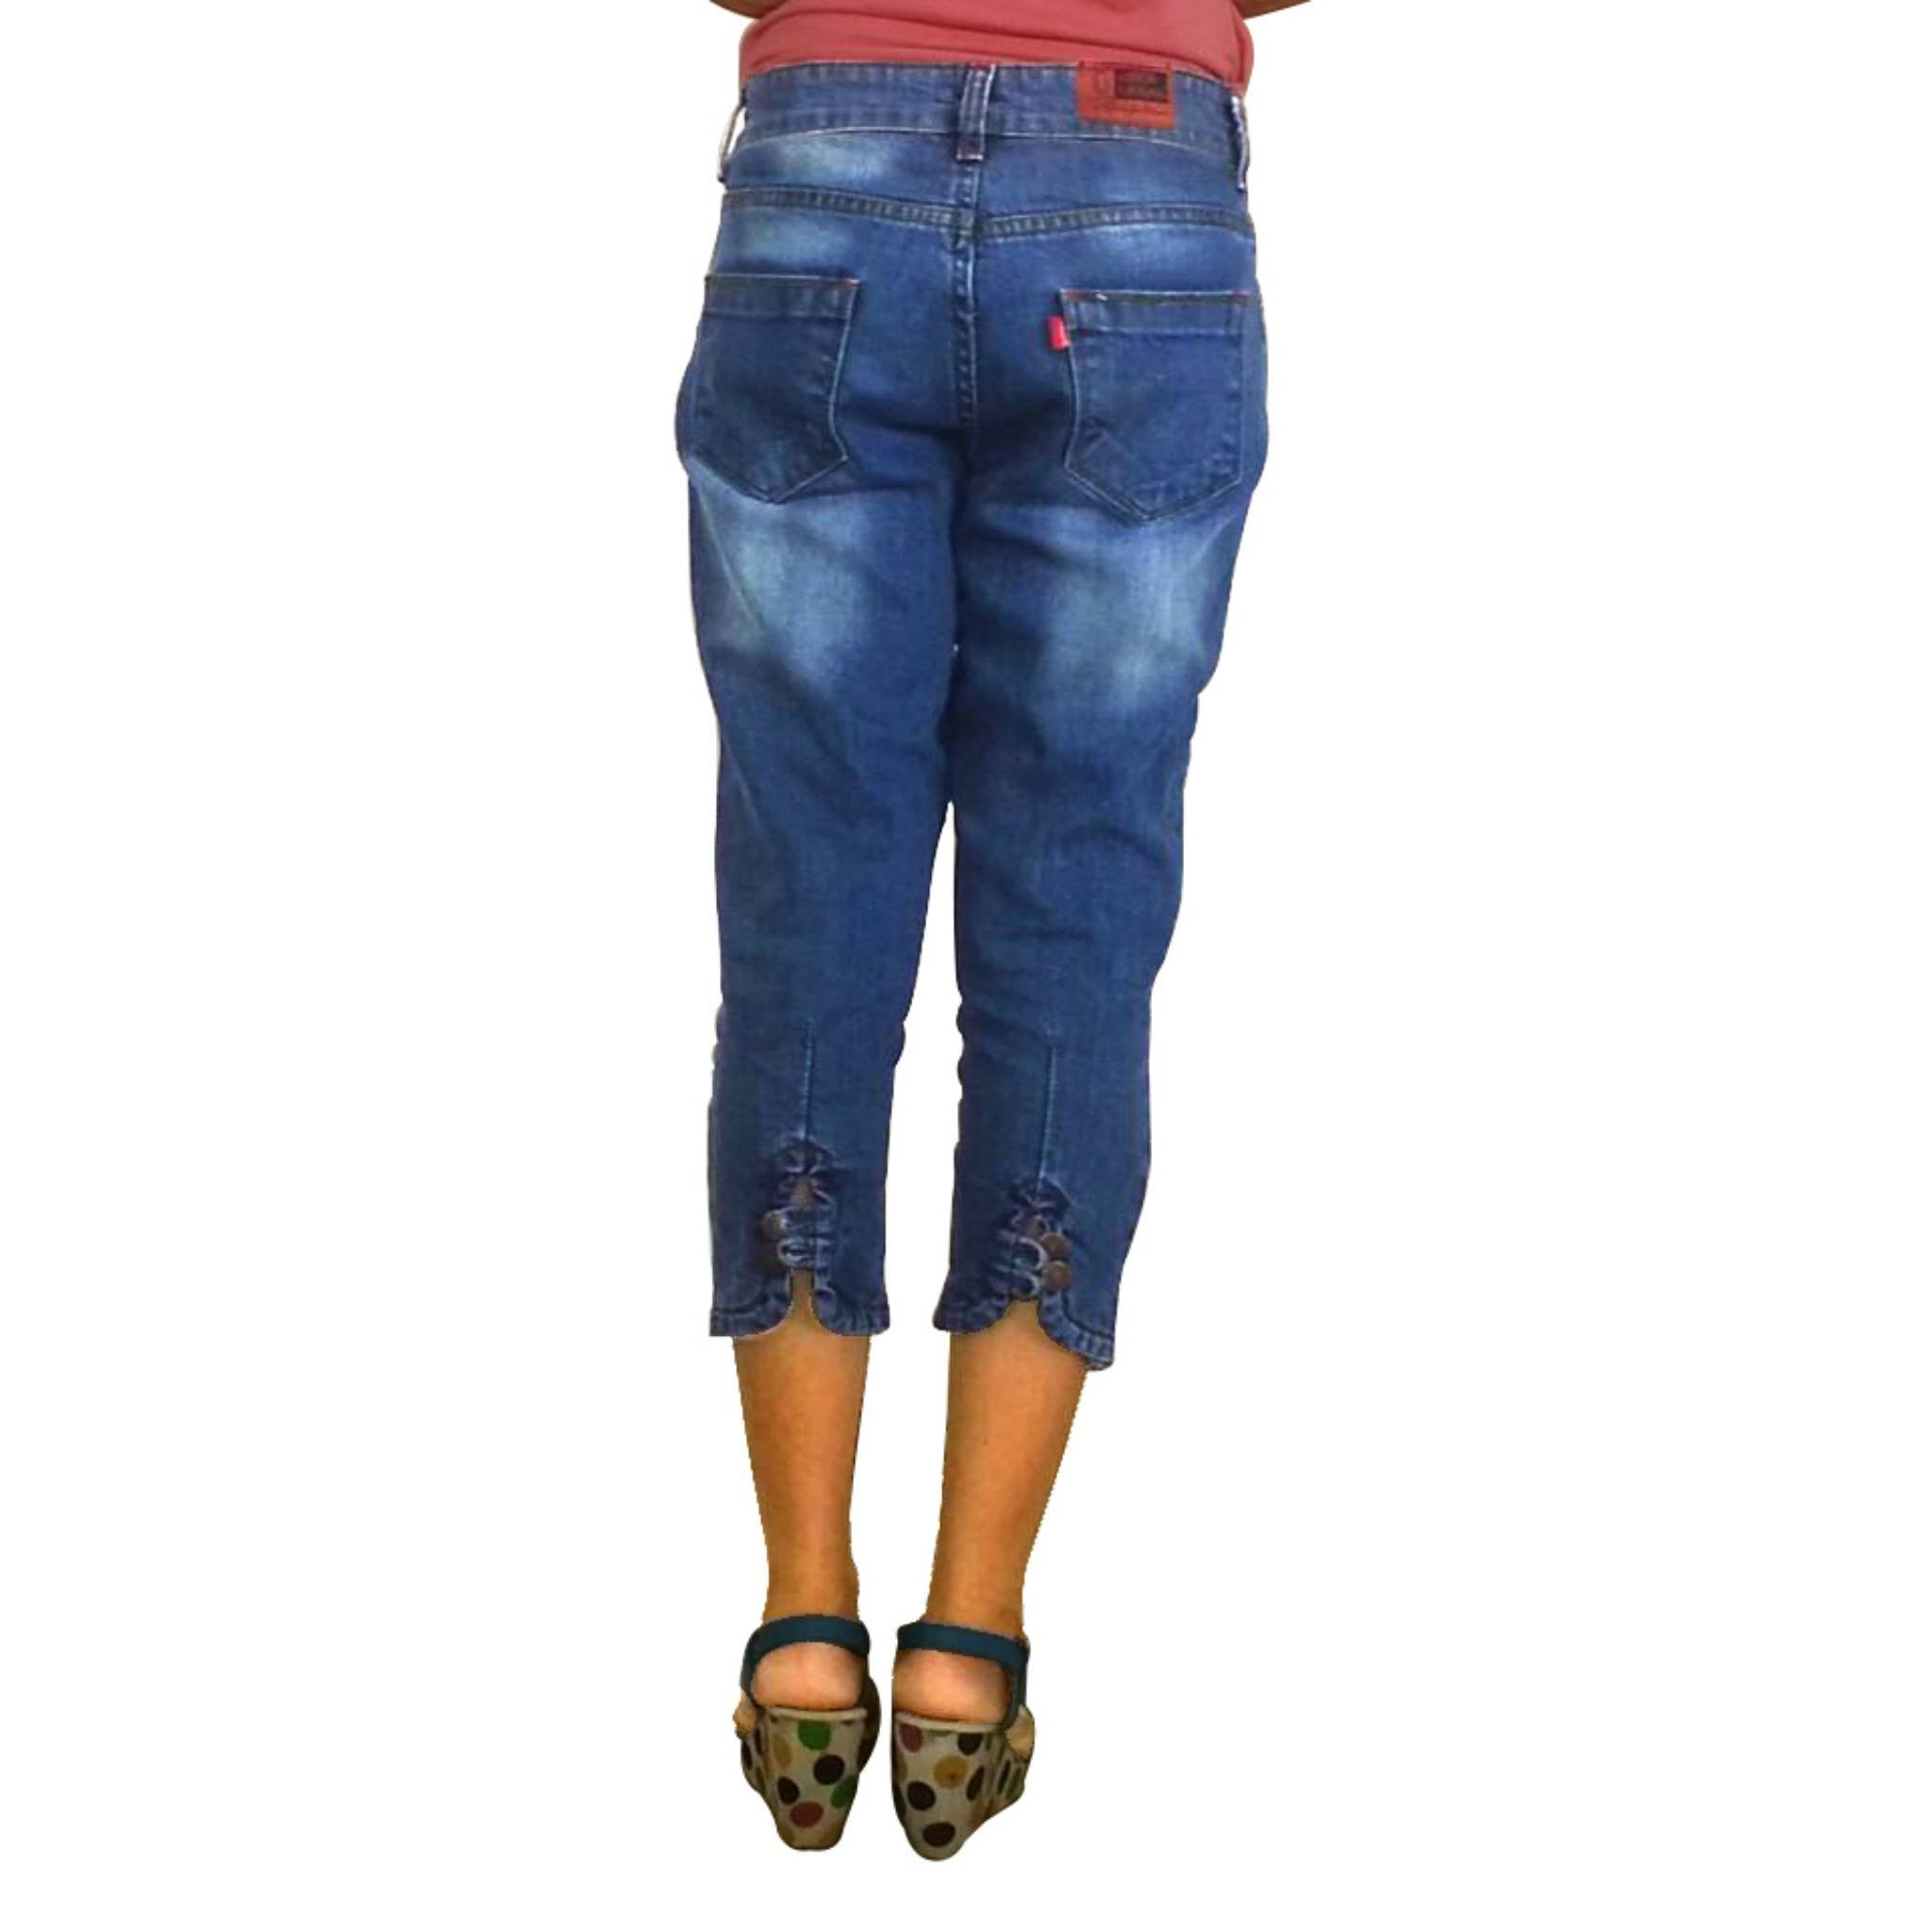 Uber Blue Denim Capri for women back view